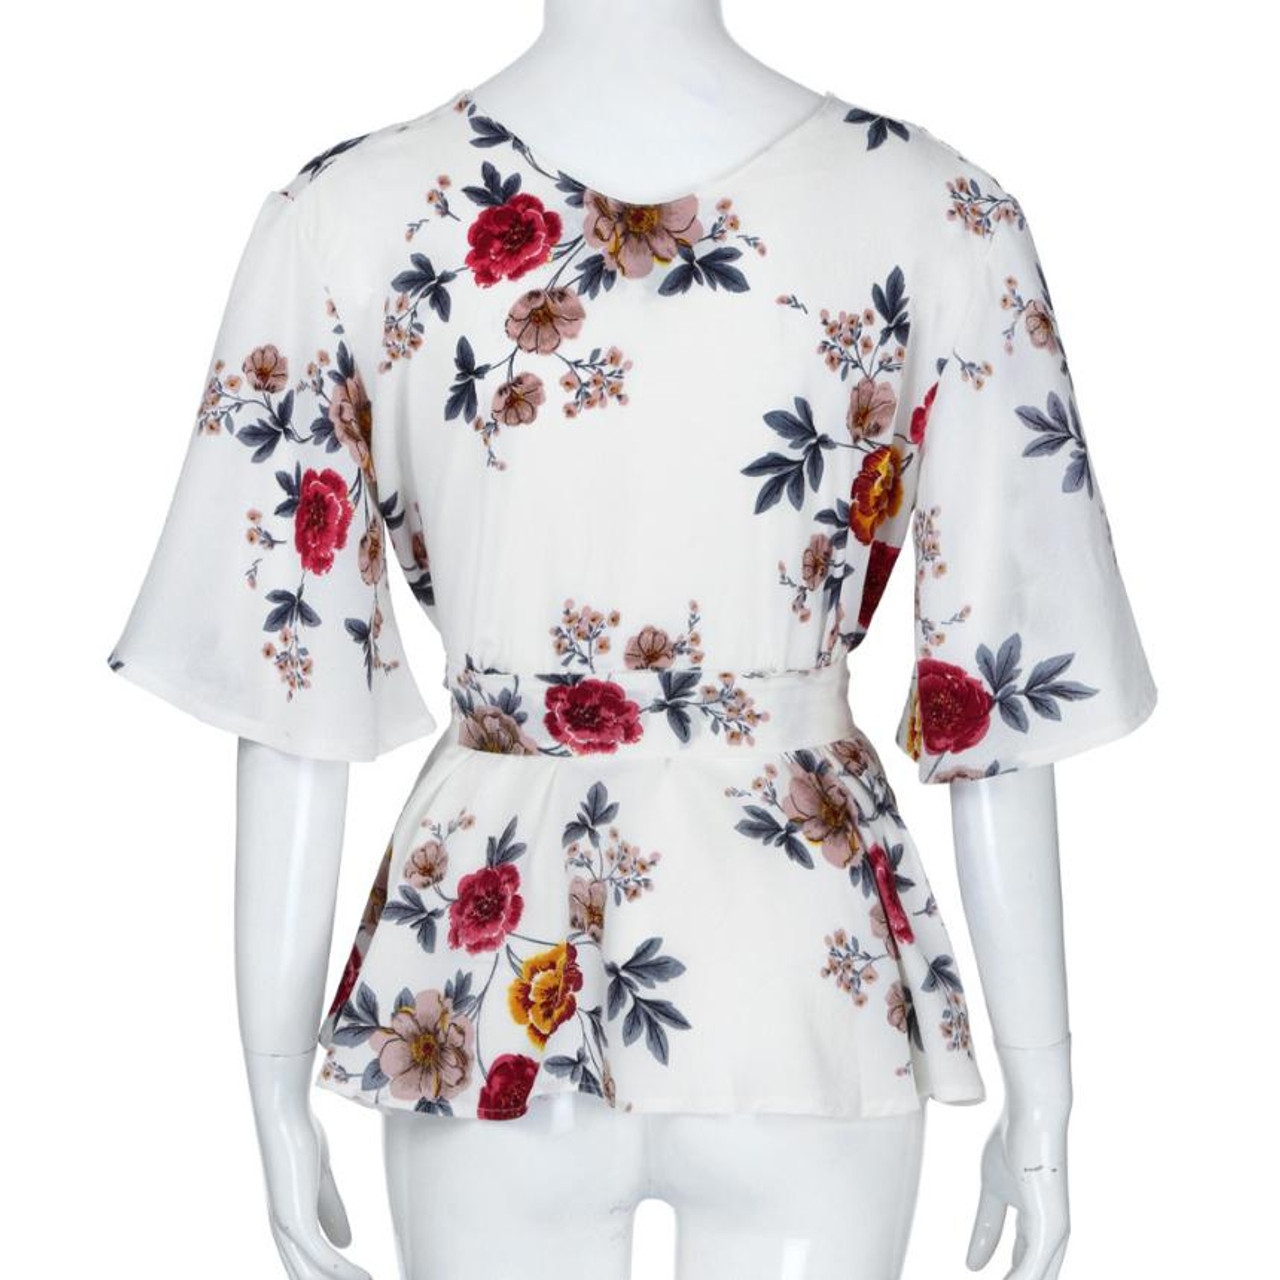 fd7cb4500e1 ... Feitong Womens Blouse Plus Size Sexy V Neck Floral Print Flare Sleeve Belted  Surplice Peplum Tops ...